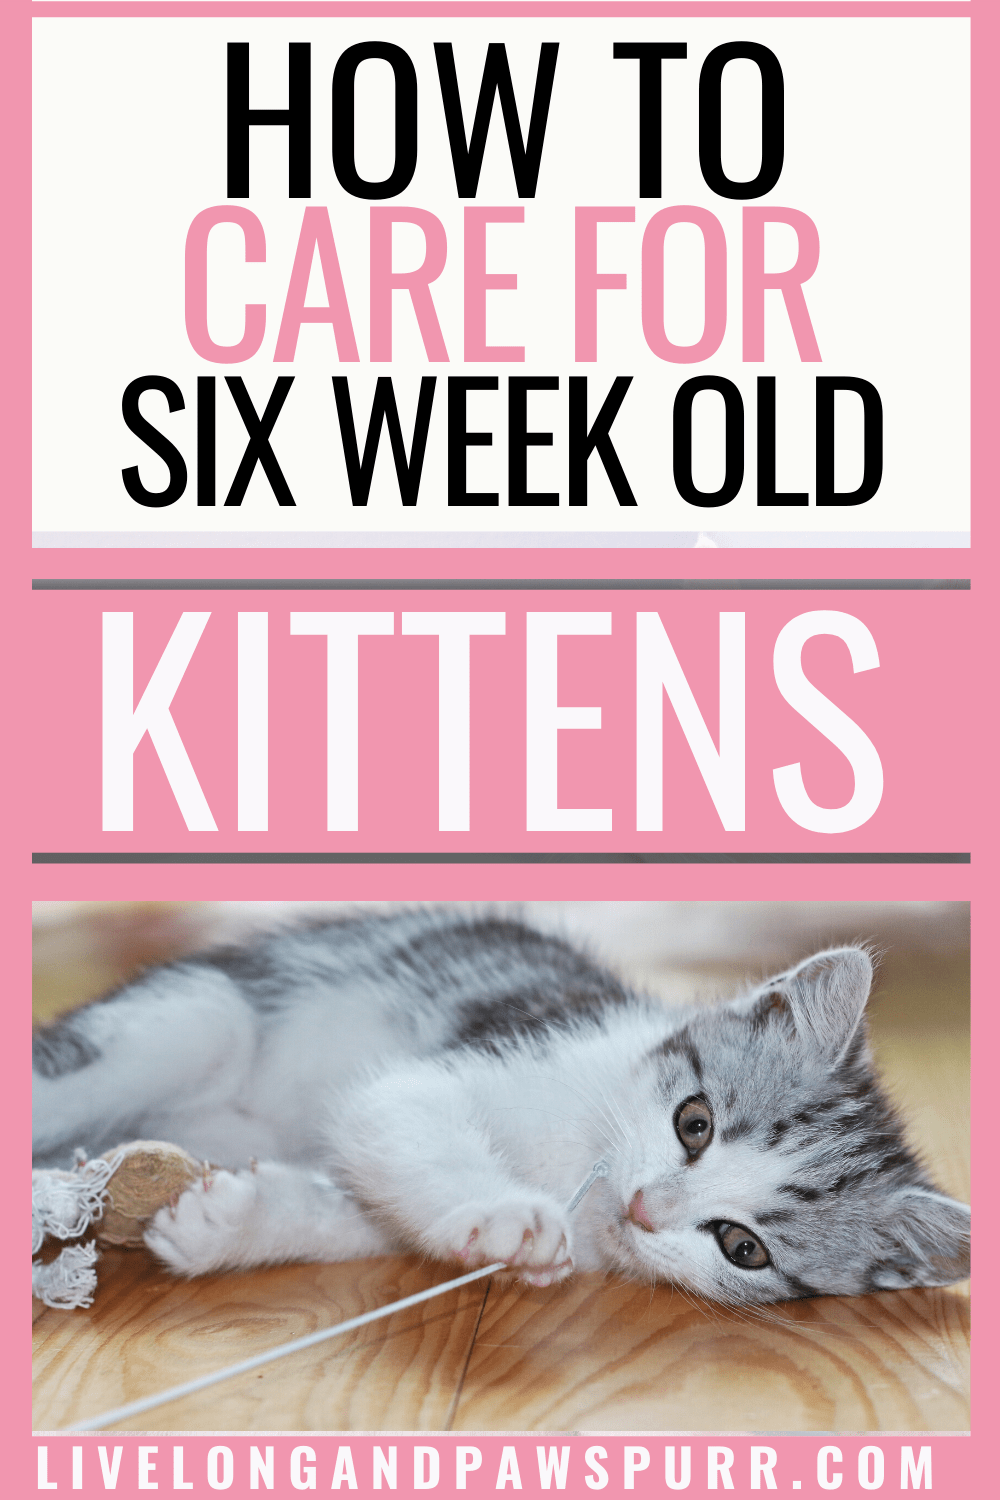 The Complete Guide To 6 Week Old Kittens Live Long And Pawspurr In 2020 6 Week Old Kitten Kitten Care Taking Care Of Kittens